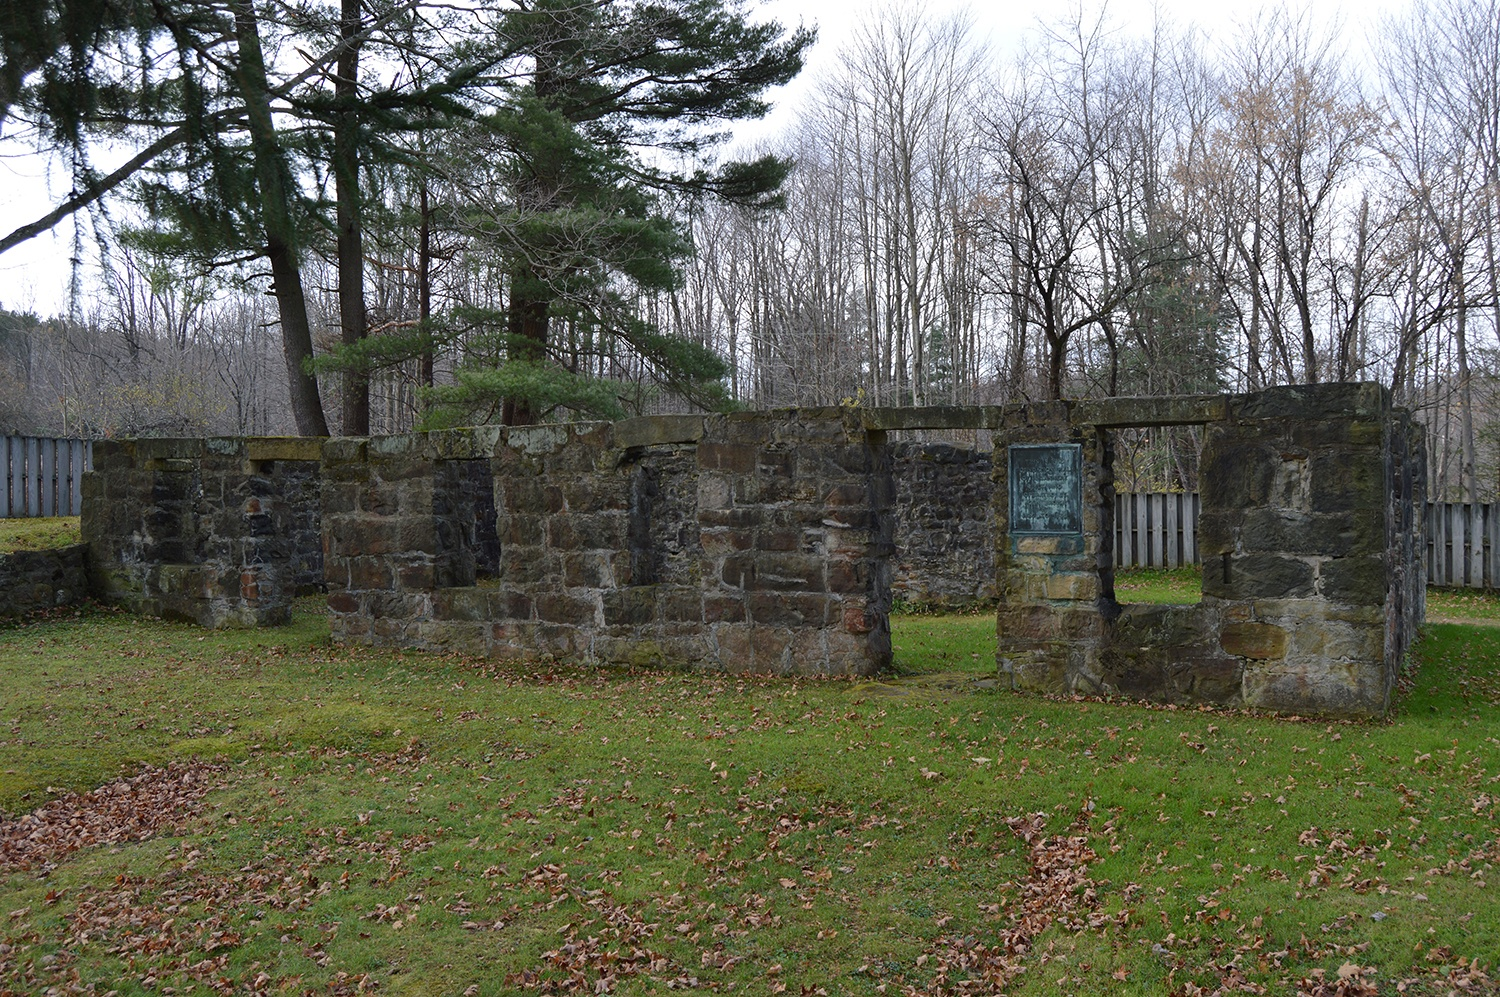 Photograph showing the remaining ruins of the John Brown tannery, Crawford County, Pa, 2014.